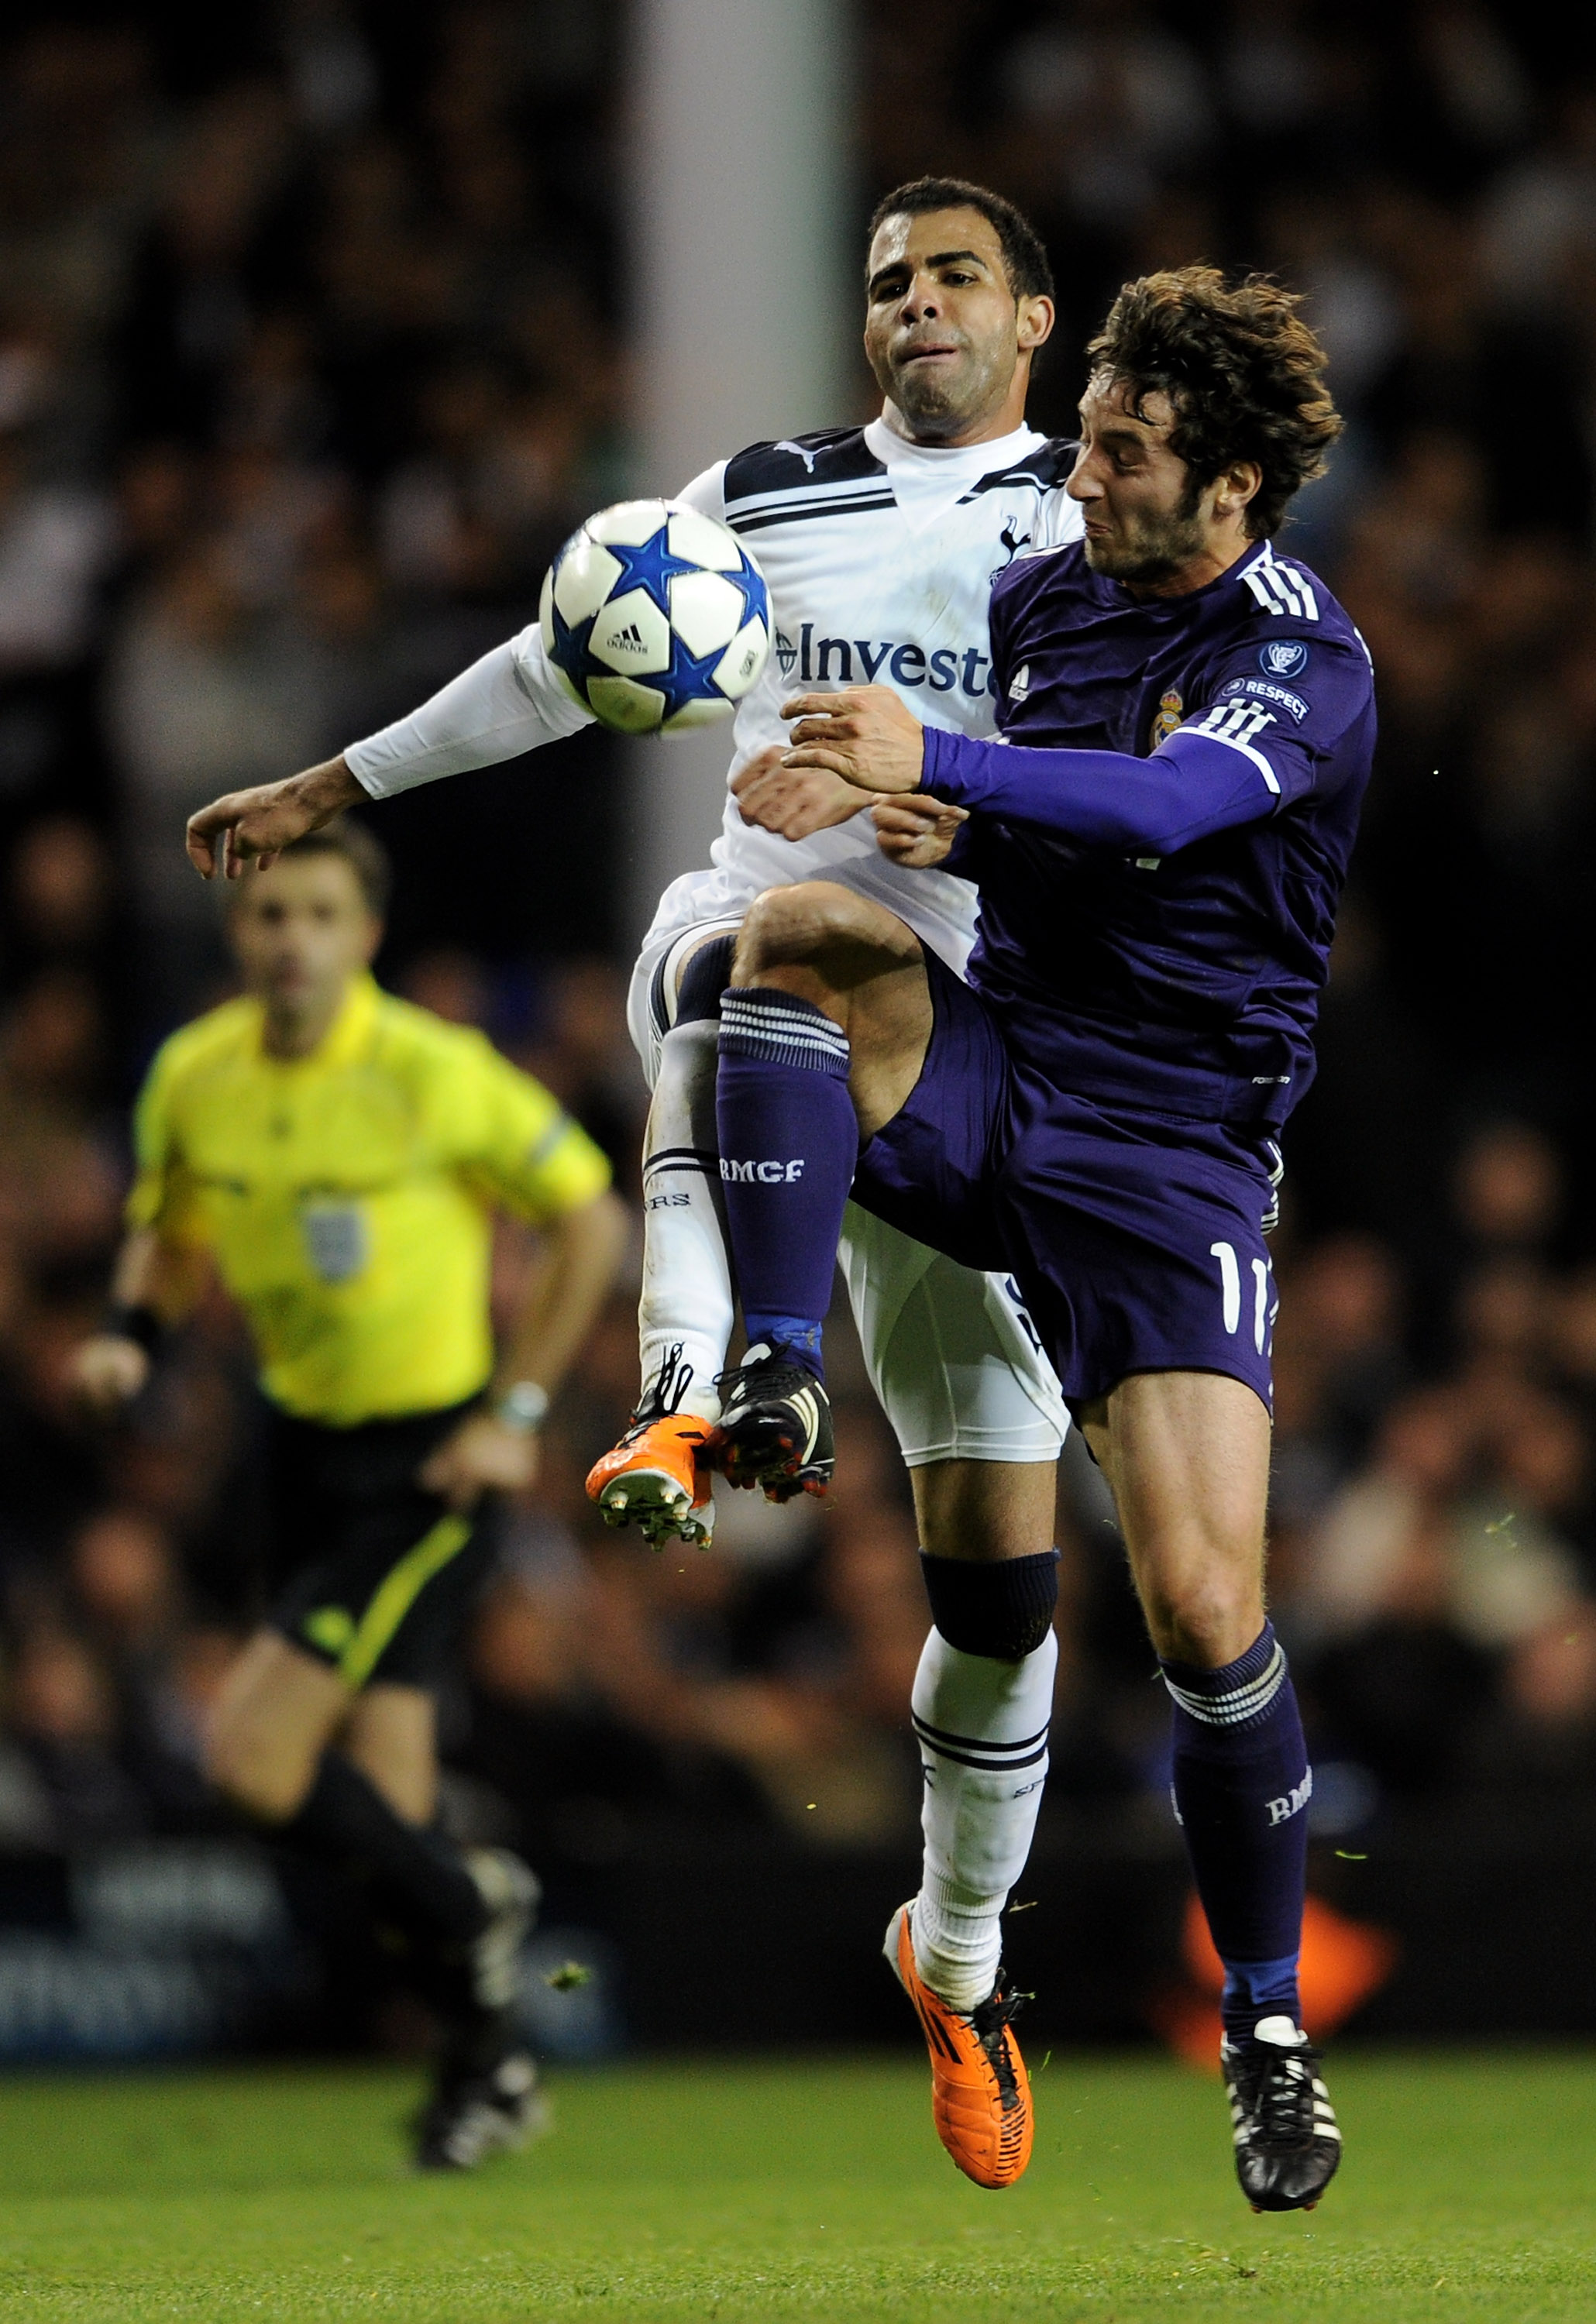 LONDON, ENGLAND - APRIL 13:  Sandro of Spurs fights for the ball with Esteban Granero of Real Madrid during the UEFA Champions League quarter final second leg match between Tottenham Hotspur and Real Madrid at White Hart Lane on April 13, 2011 in London,